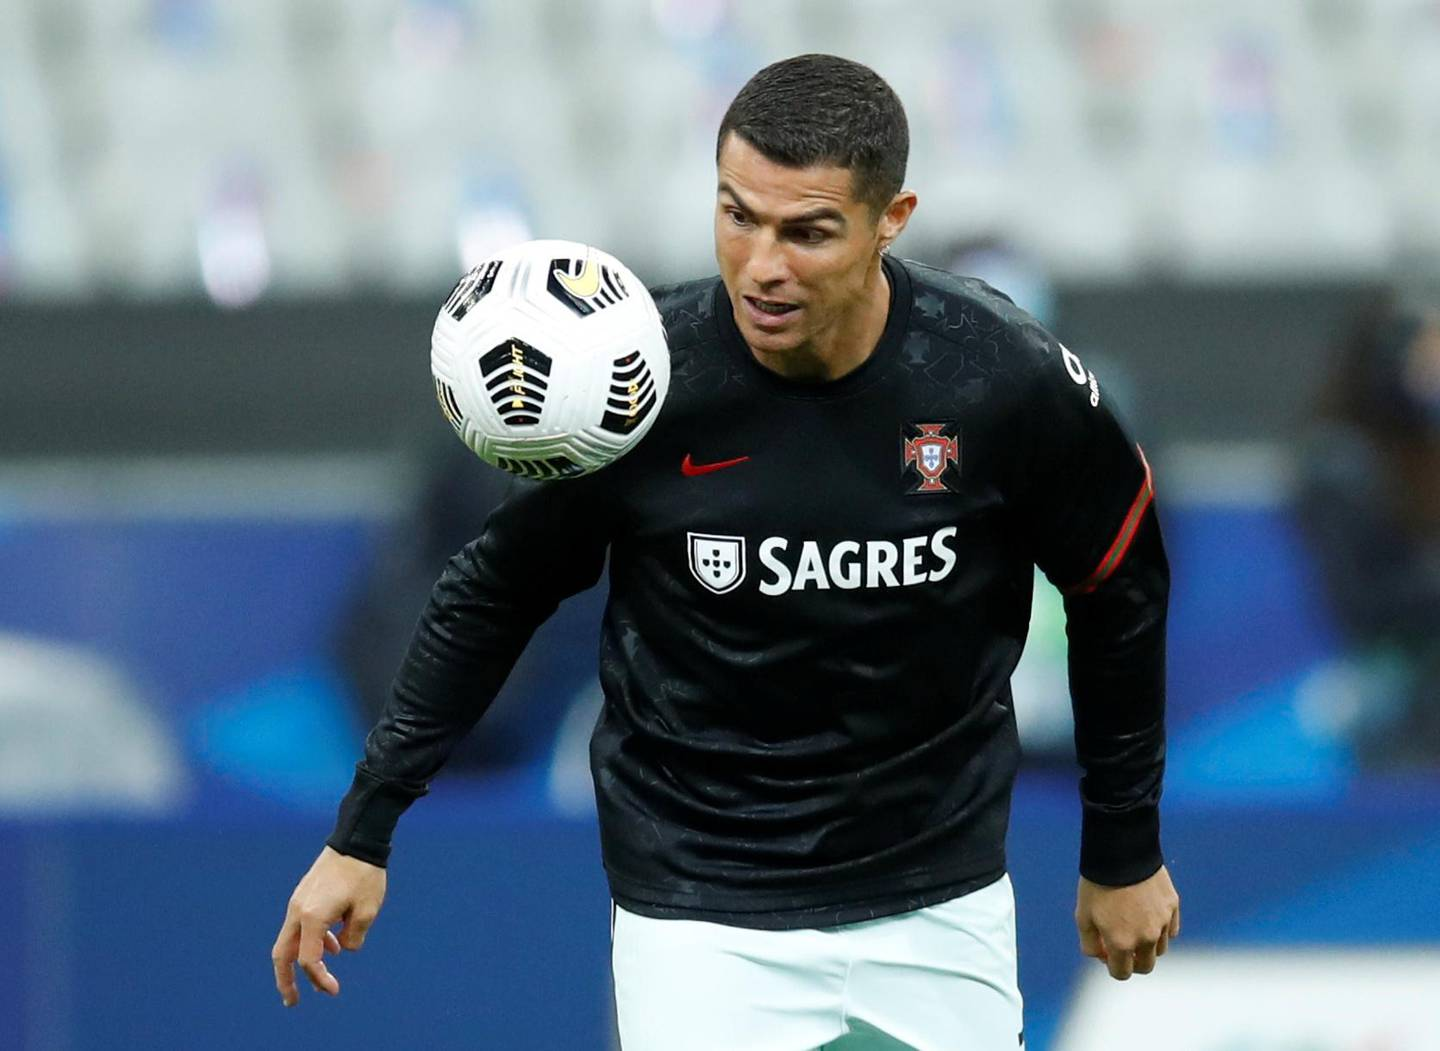 FILE PHOTO: Soccer Football - UEFA Nations League - League A - Group 3 - France v Portugal - Stade De France, Paris, France - October 11, 2020 Portugal's Cristiano Ronaldo during the warm up before the match REUTERS/Gonzalo Fuentes/File Photo